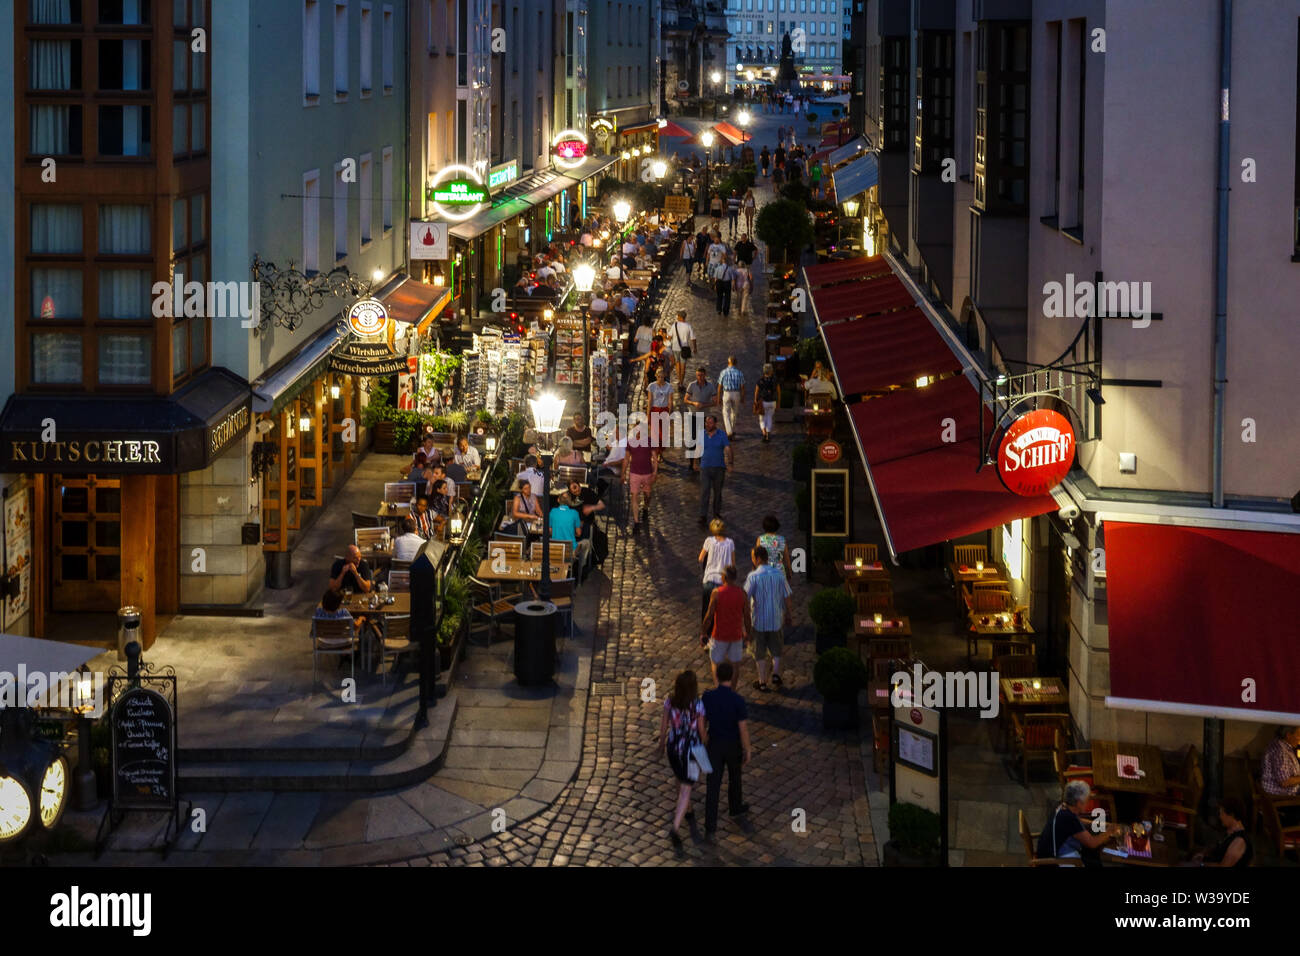 Dresden Restaurant, People Old Town Germany - Stock Image